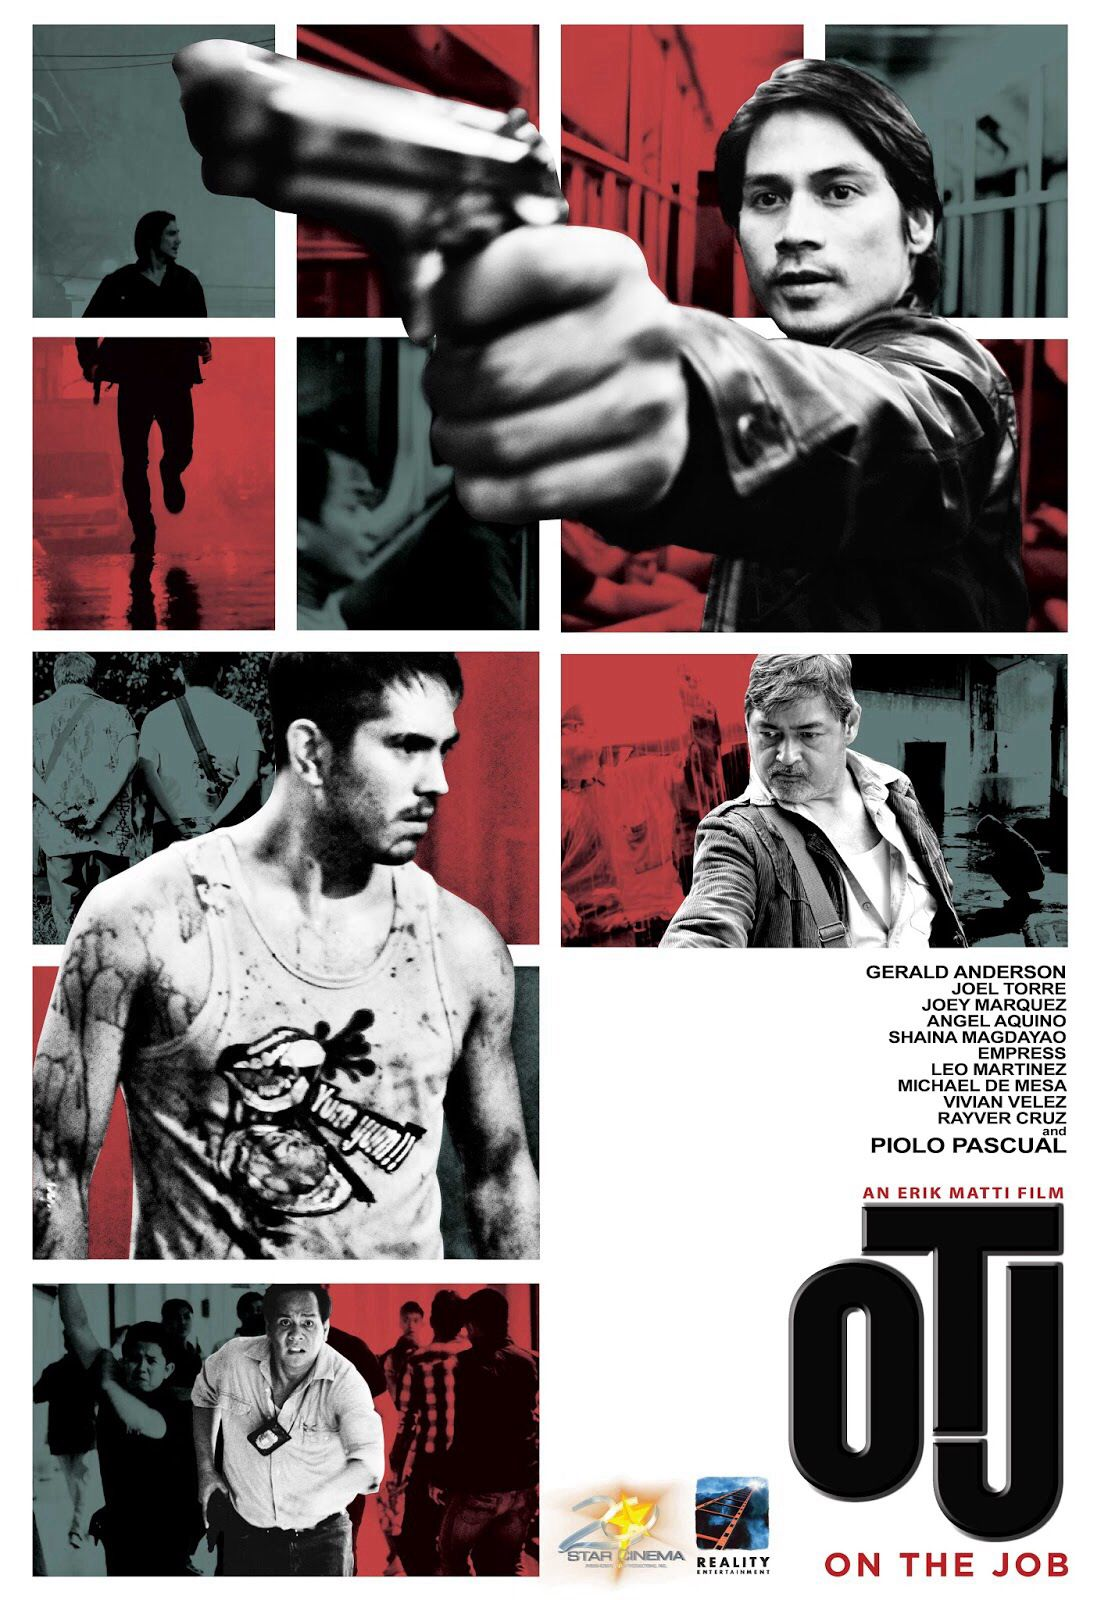 On The Job is a Filipino Indie film directed by Erik Matti